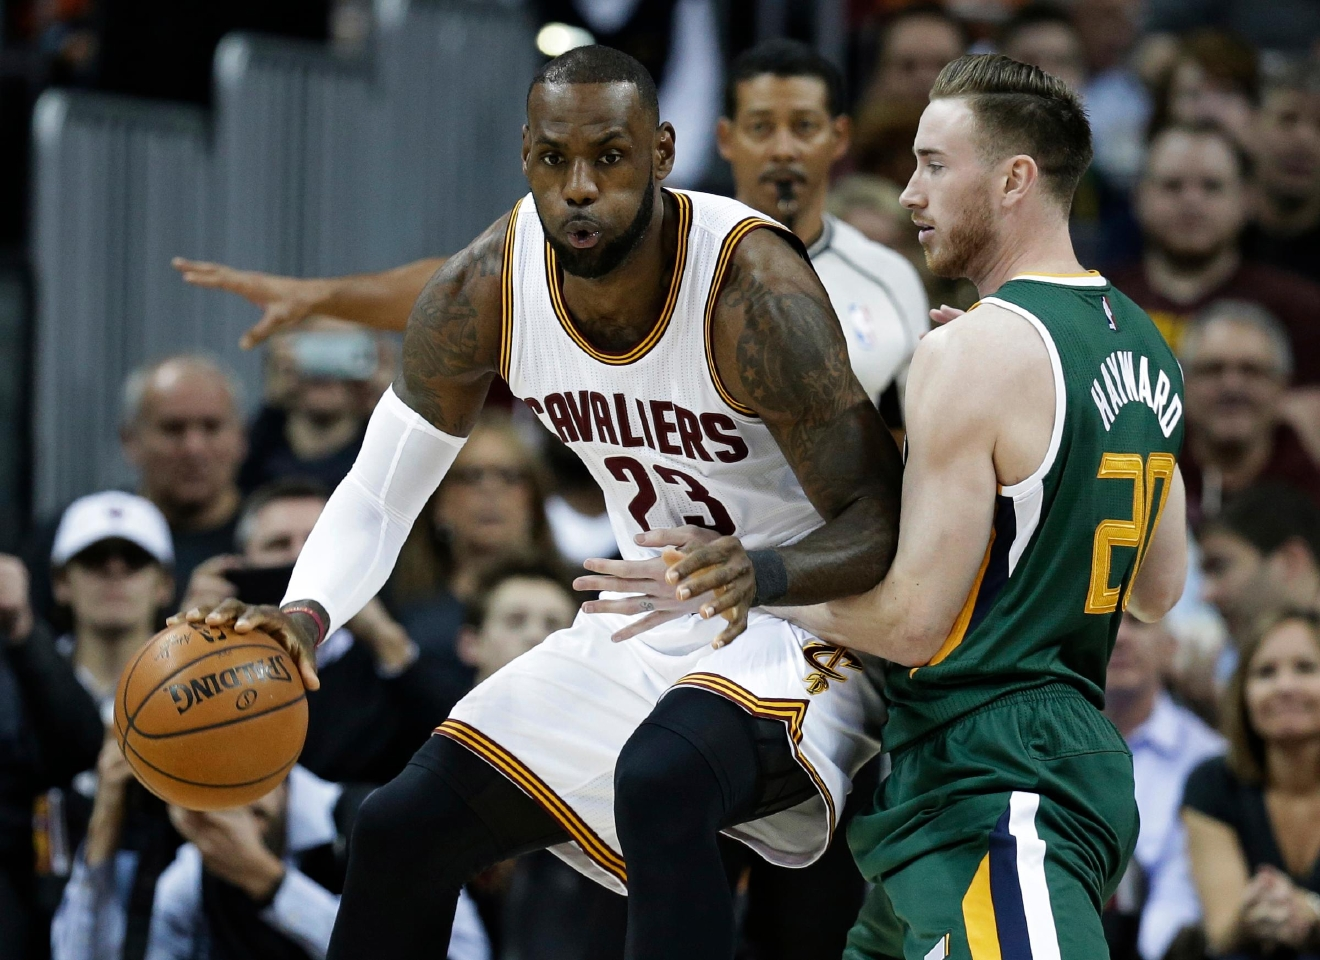 Cleveland Cavaliers' LeBron James (23) drives against Utah Jazz's Gordon Hayward (20) in the first half of an NBA basketball game, Thursday, March 16, 2017, in Cleveland. (AP Photo/Tony Dejak)